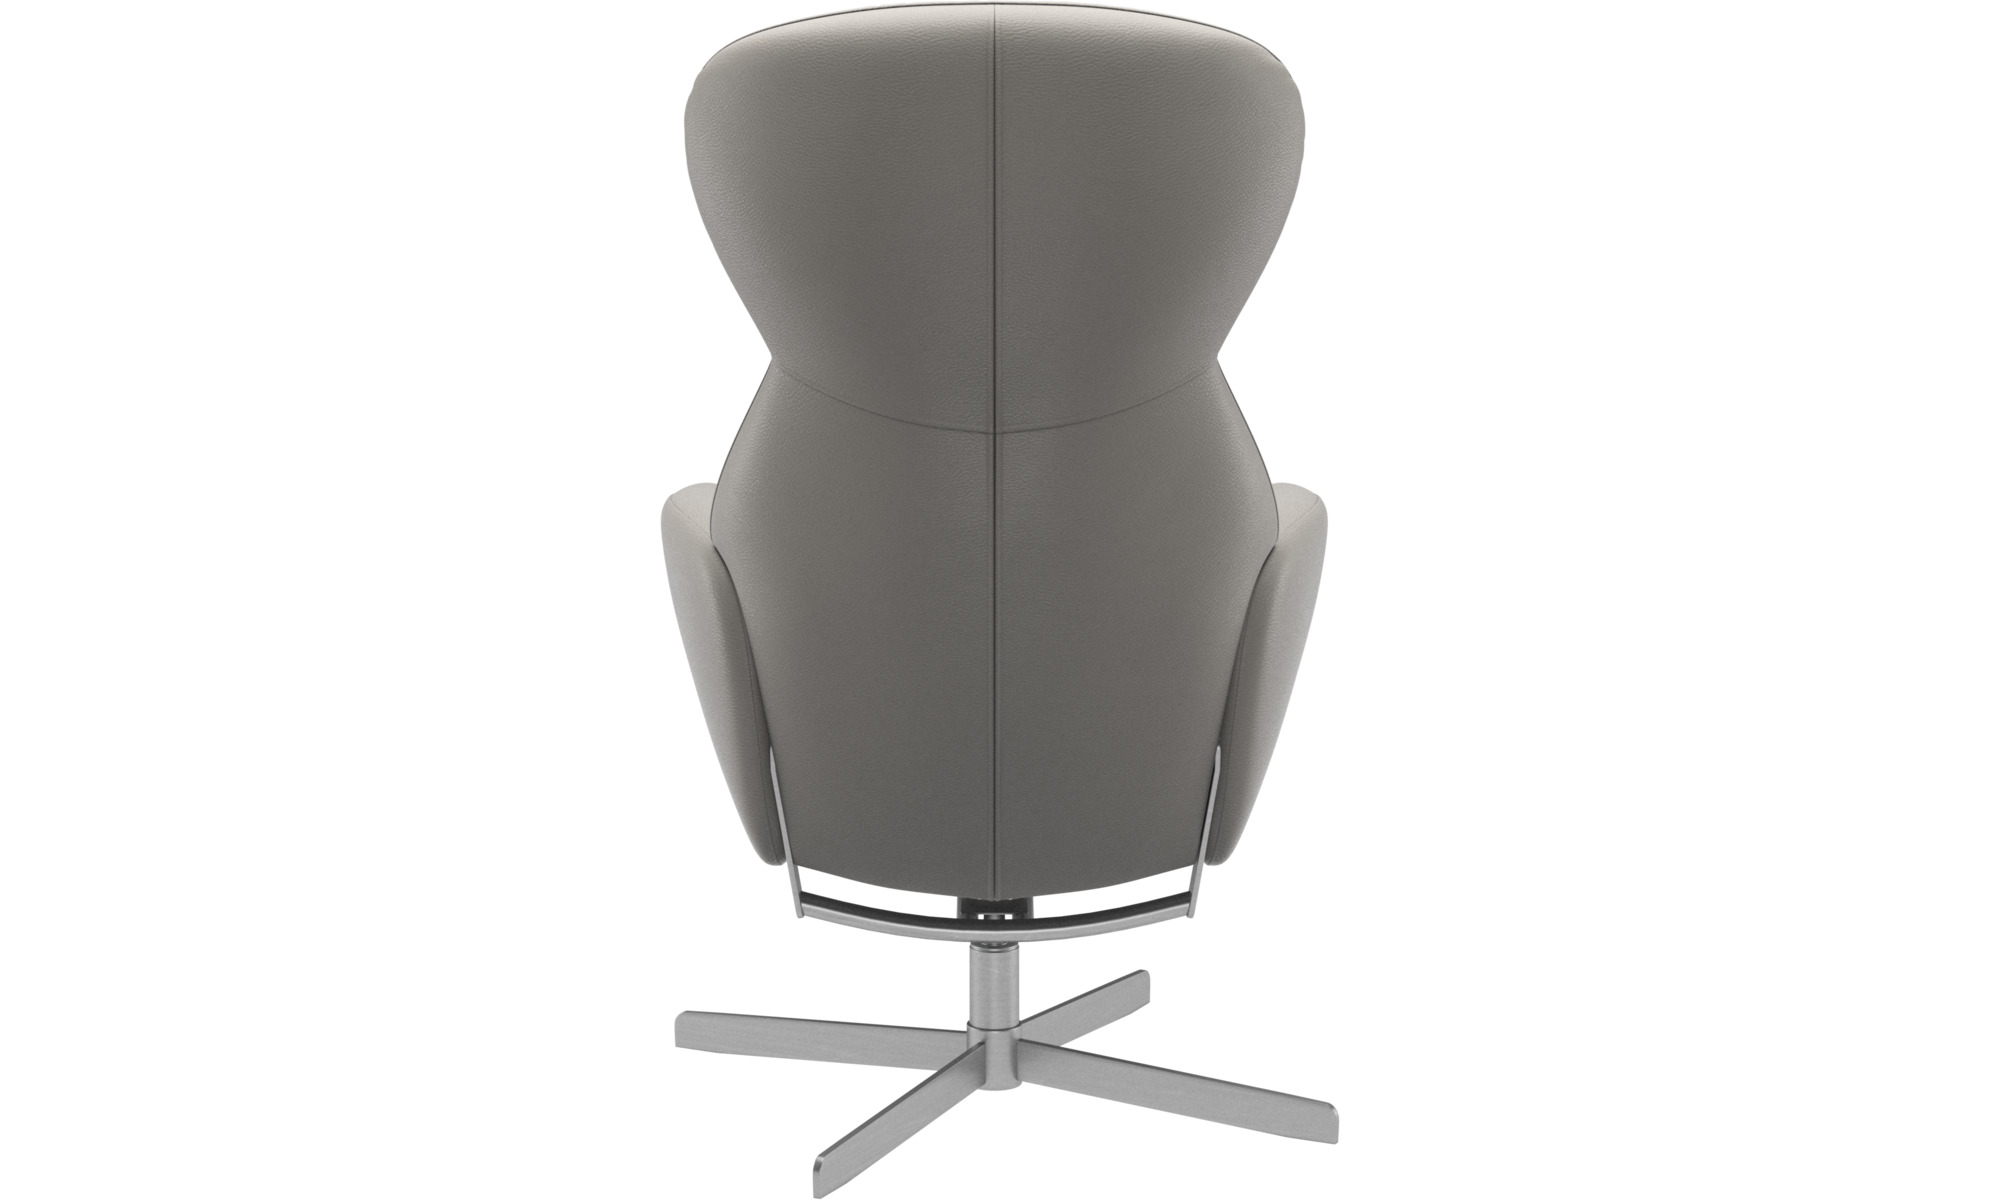 ... Athena chair with reclining back function and swivel base - BoConcept